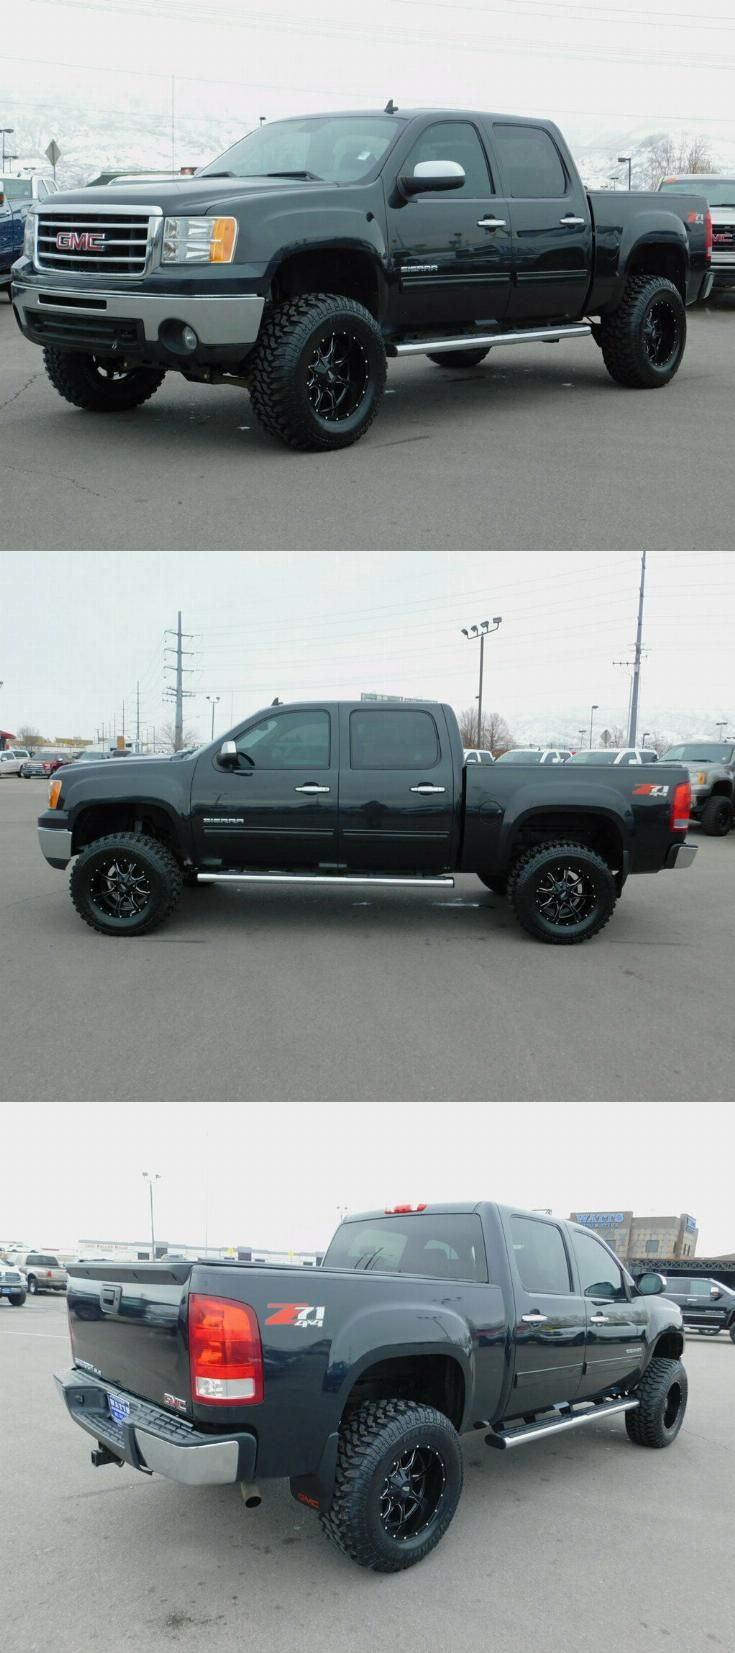 Pin By Cars For Sale On Cars Trucks In 2020 Lifted Trucks Gmc